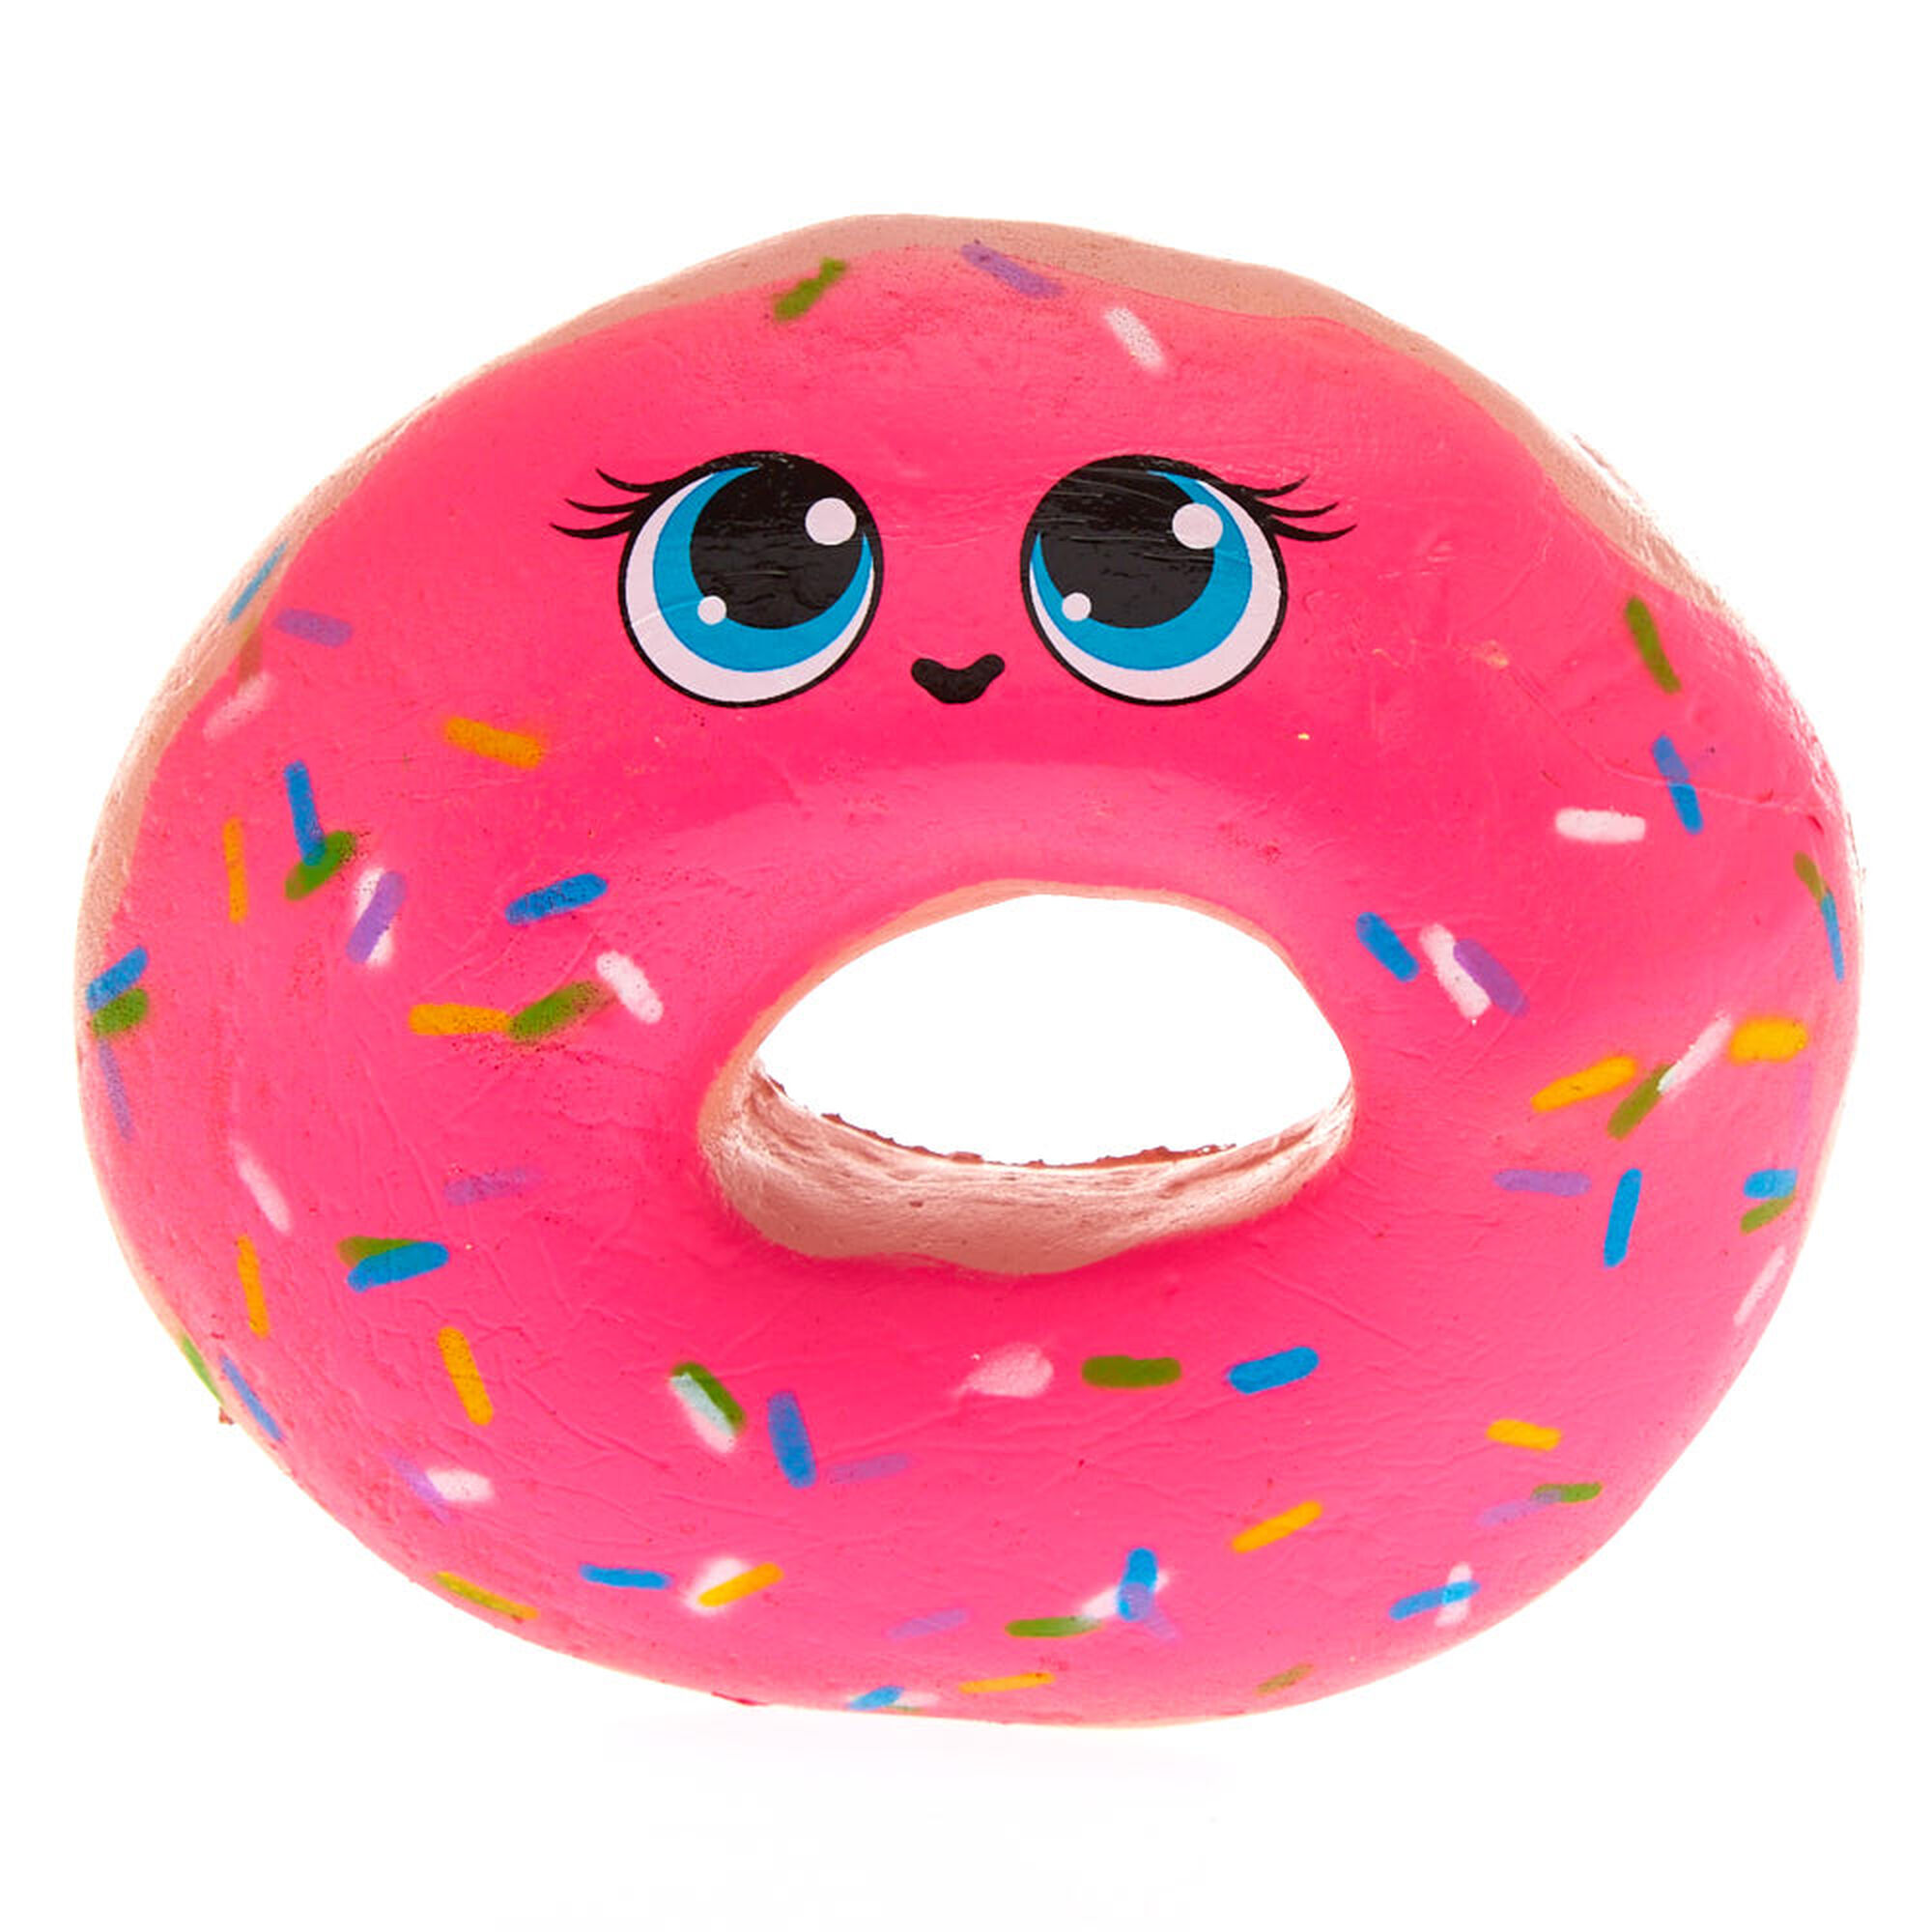 Squishy Donut Toy : Pink Sprinkled Donut Squishy Toy Claire s US